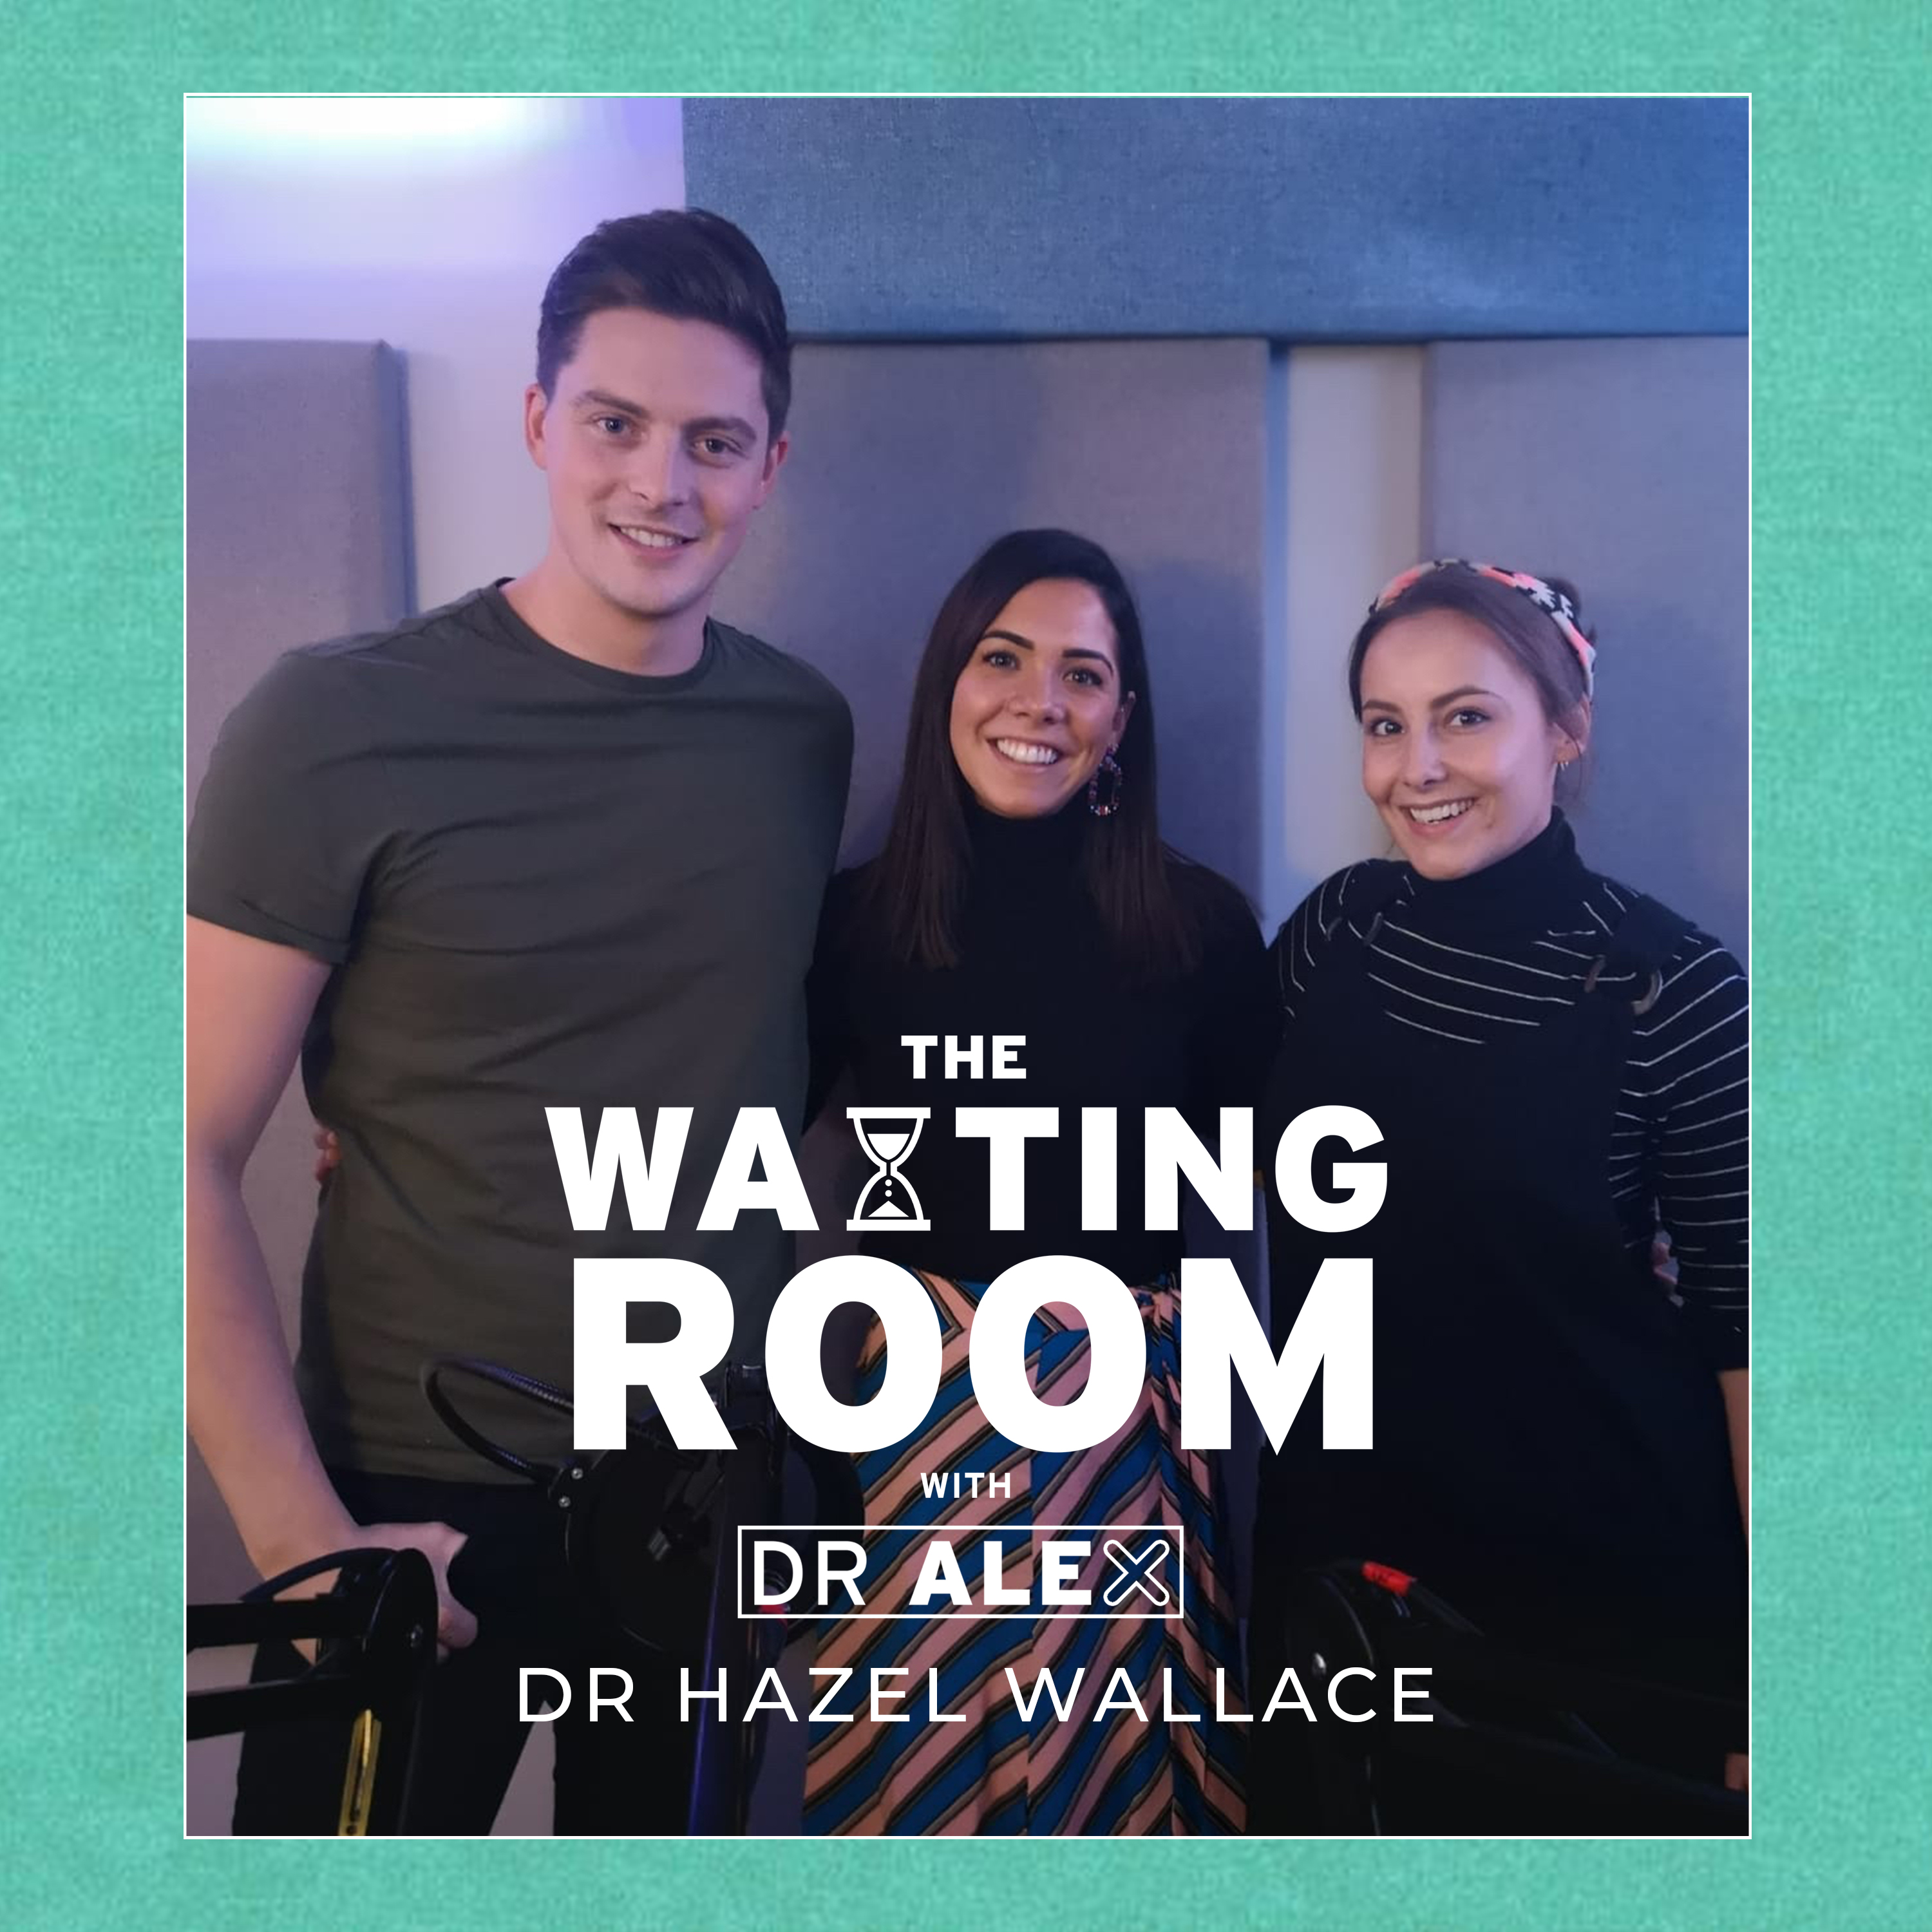 Needle phobias, crash diets & drug tests (feat. Dr Hazel Wallace)